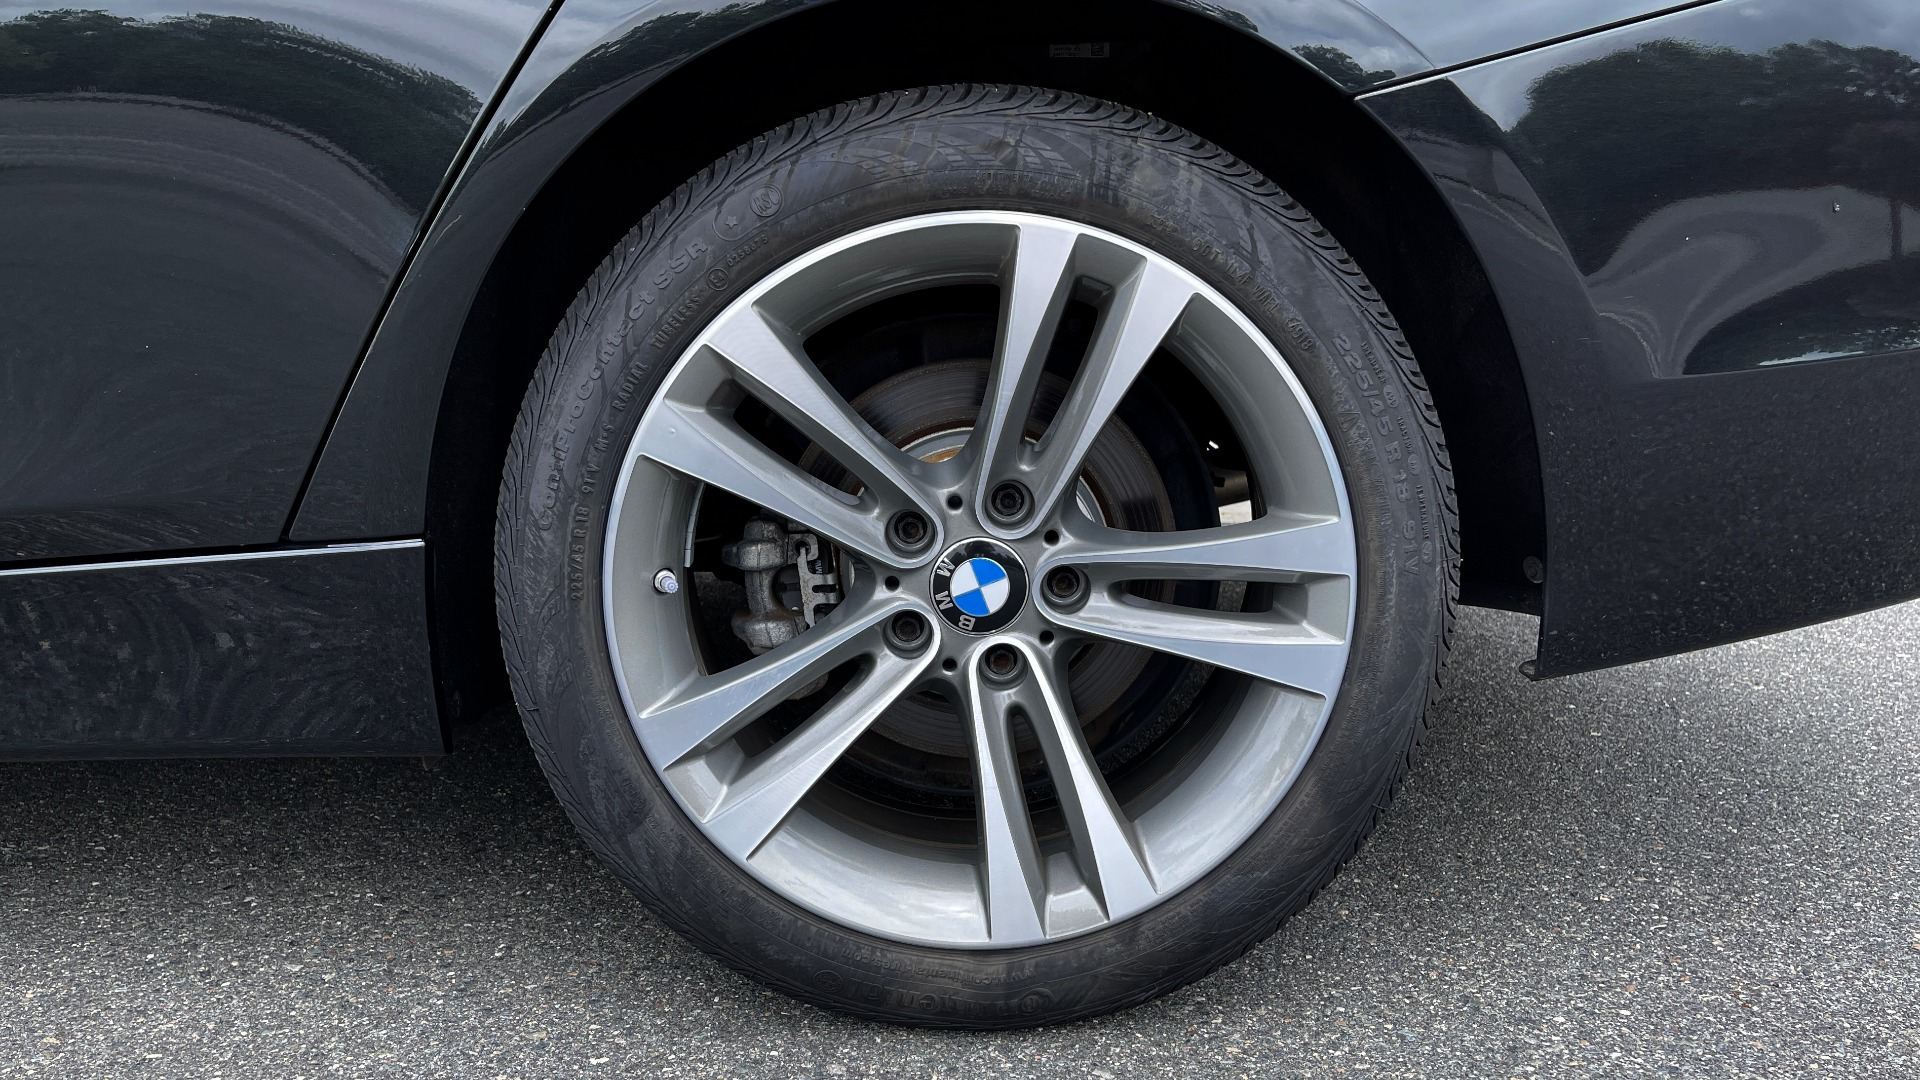 Used 2018 BMW 3 SERIES 330IXDRIVE / NAV / CONV PKG / ABSD / SUNROOF / REARVIEW for sale $29,599 at Formula Imports in Charlotte NC 28227 65